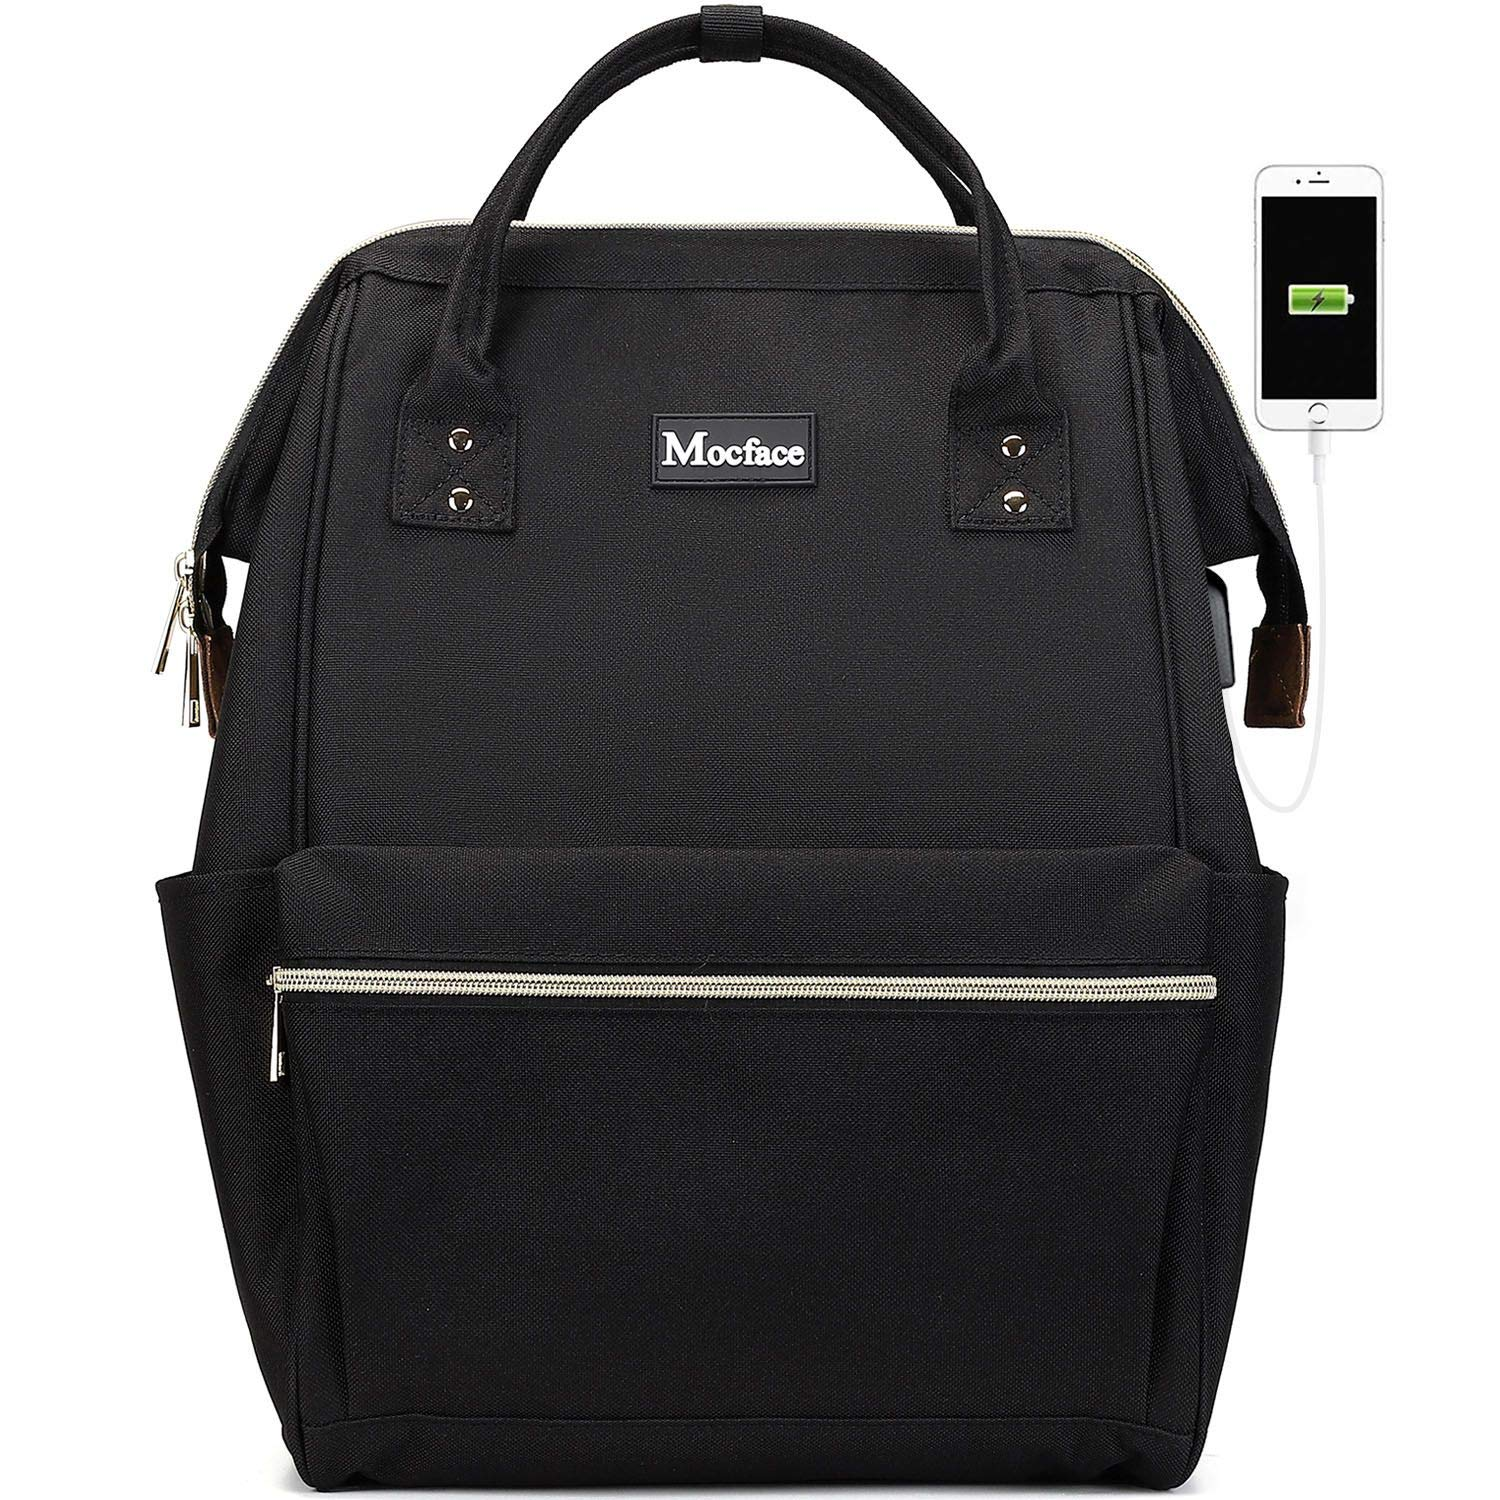 MOCFACE Laptop Backpack 15.6 Inch Stylish School Backpack Casual Daypack Work Bag with USB charging Port for Women Men